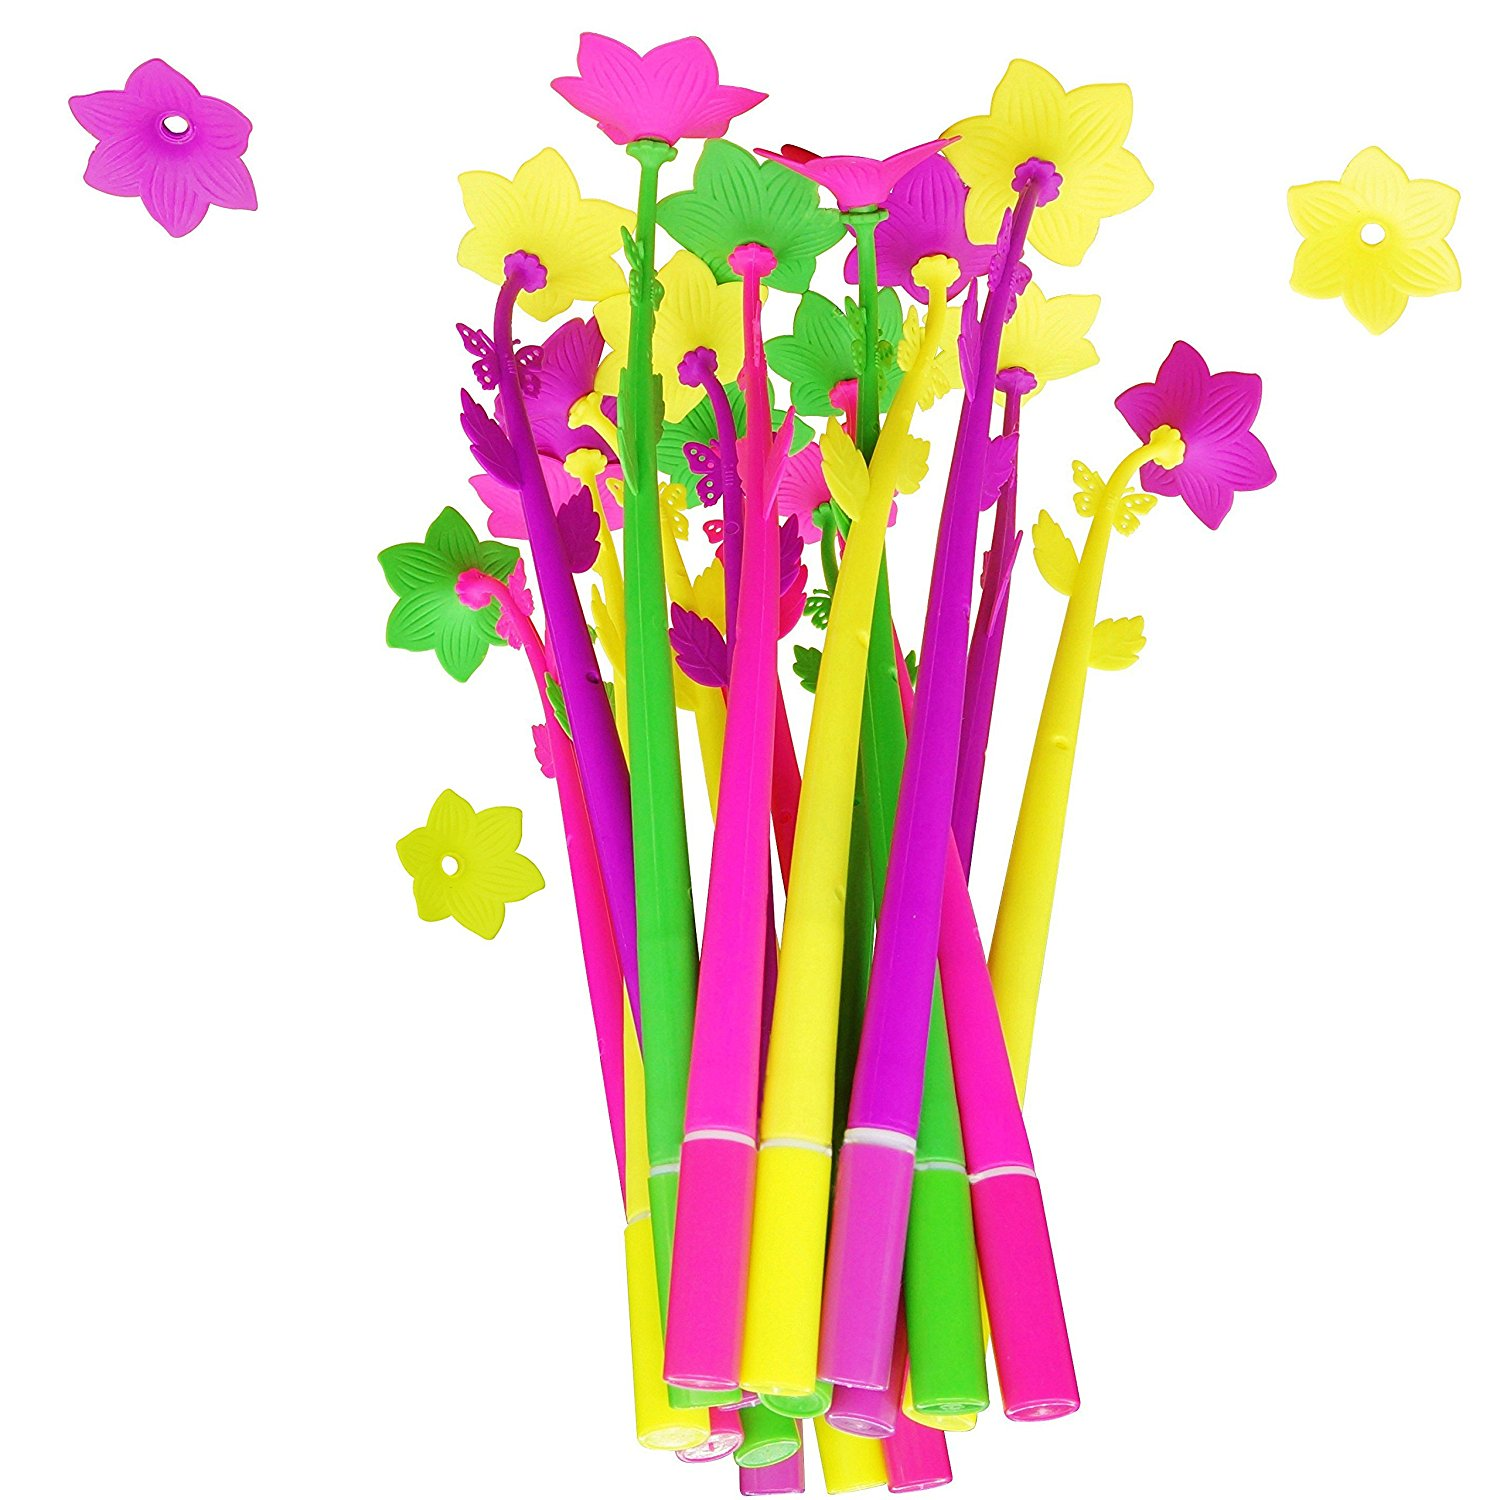 BUOP Daffodil Flower Style Ball-Point Pens, Extra Fine Black Gel Ink Pens, Assorted Color Flower Pens, Creative Stationery Gift, Dozen (12pcs) Box